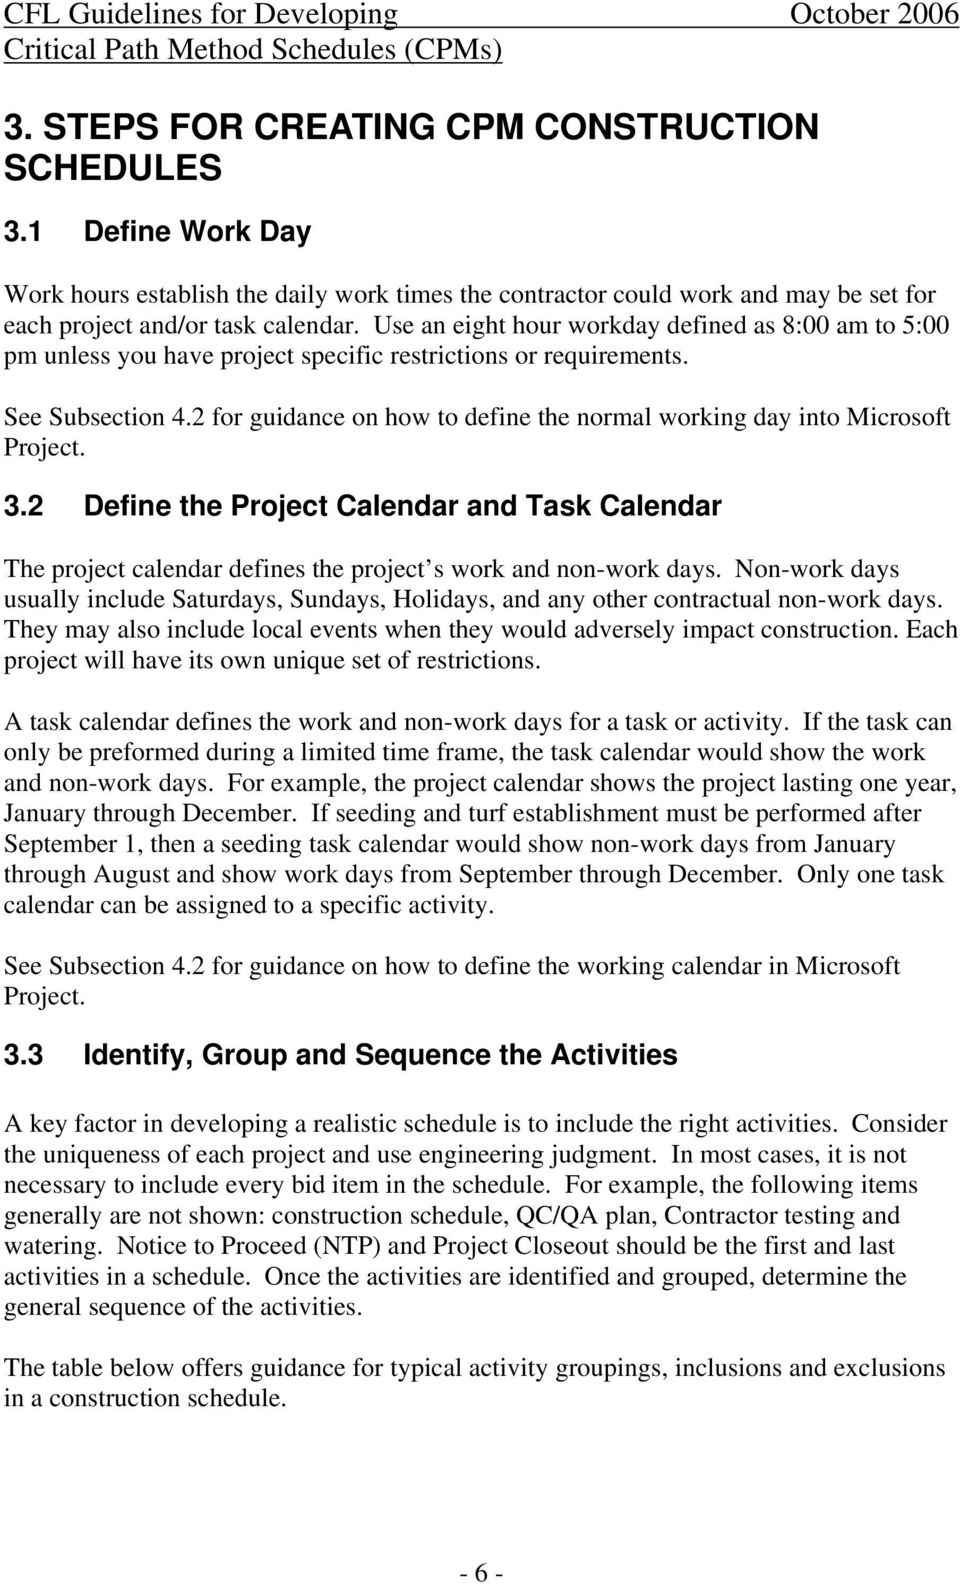 2 for guidance on how to define the normal working day into Microsoft Project. 3.2 Define the Project Calendar and Task Calendar The project calendar defines the project s work and non-work days.